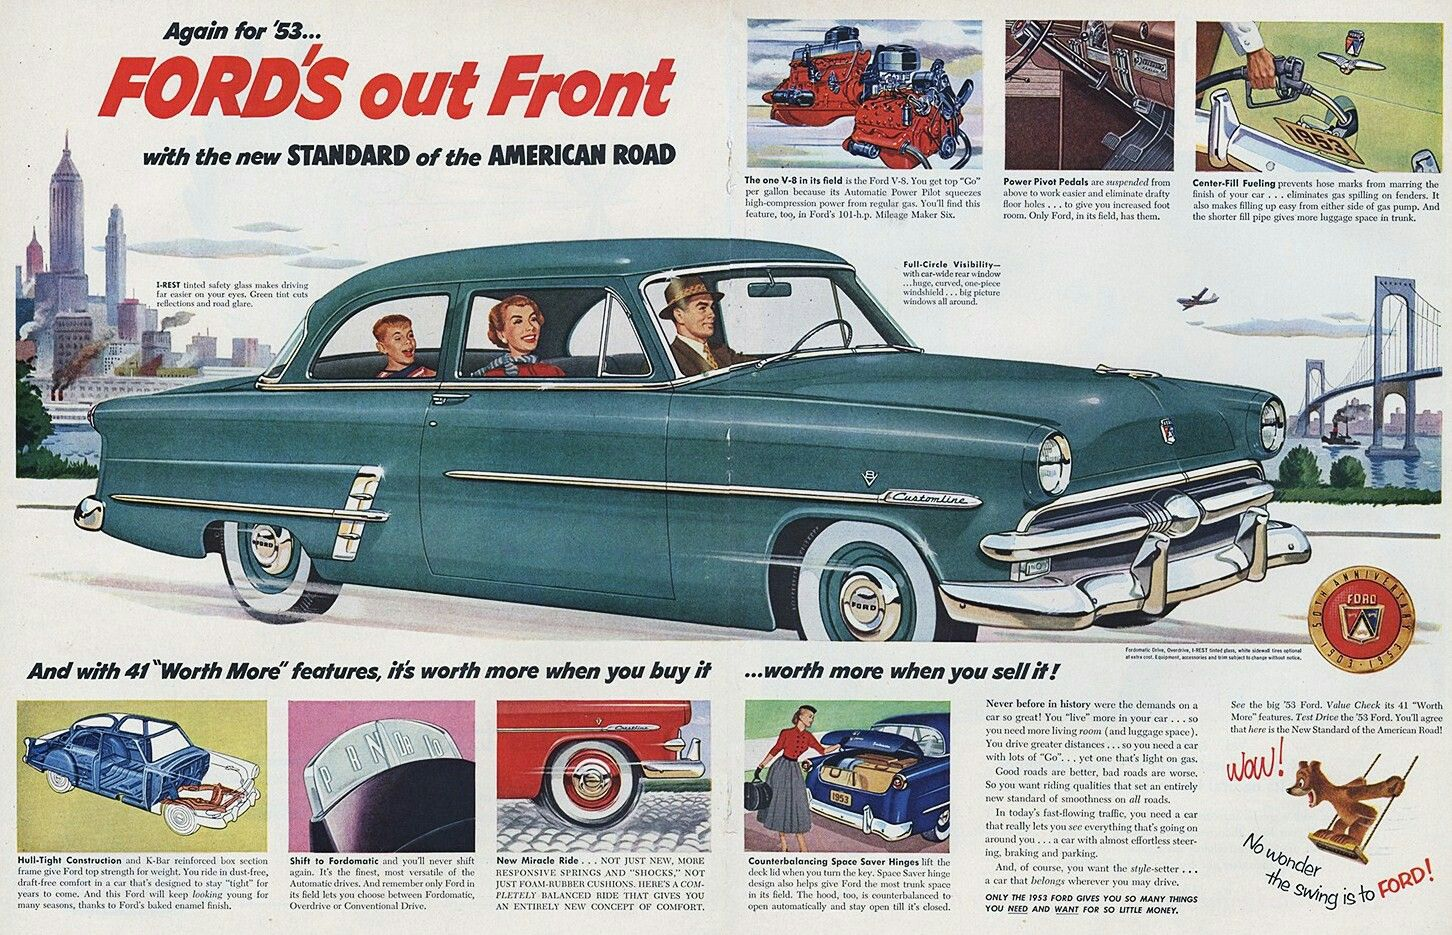 Ford 1953 | Vintage Car Ads - Ford | Pinterest | Ford and Cars